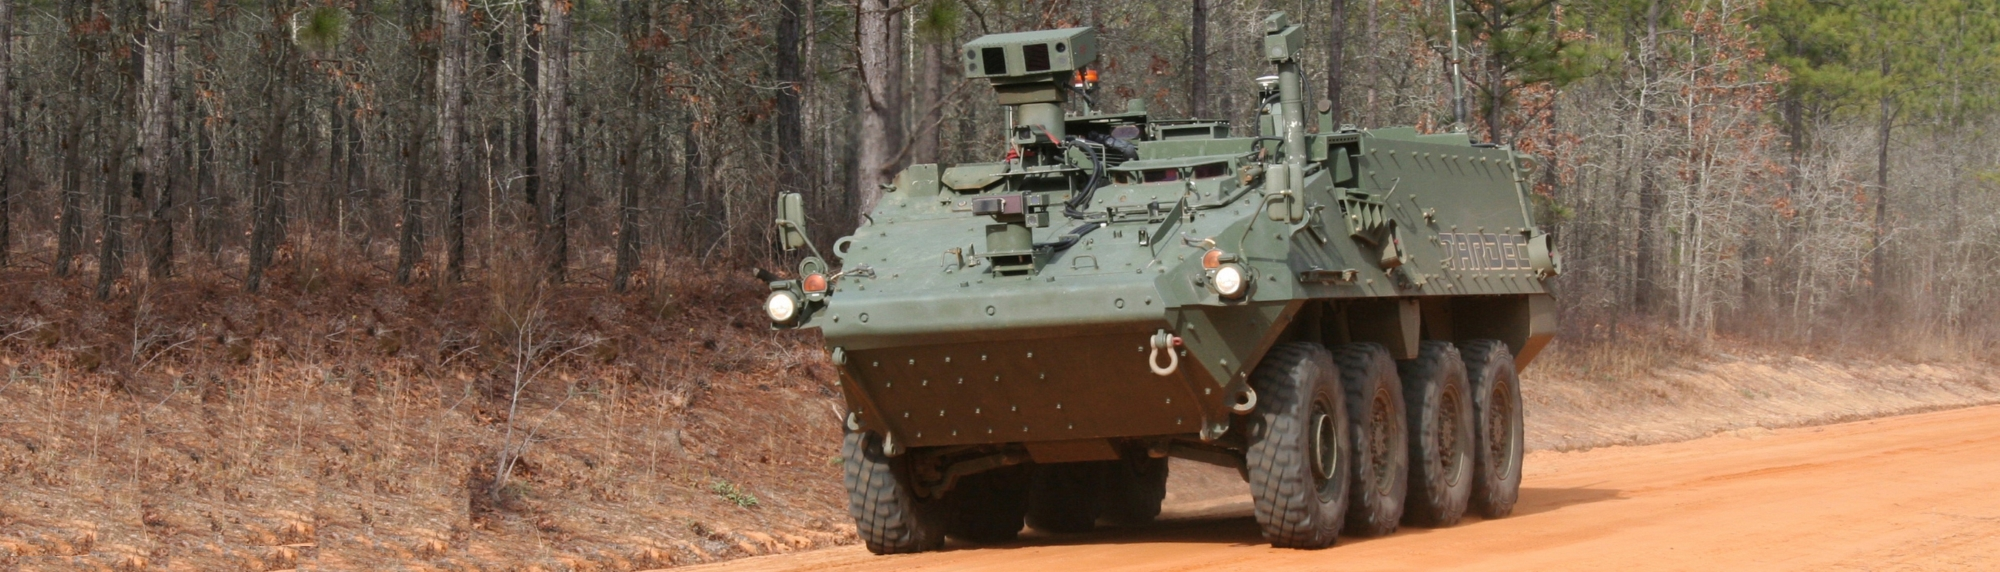 Remotely Operated Ground Vehicle